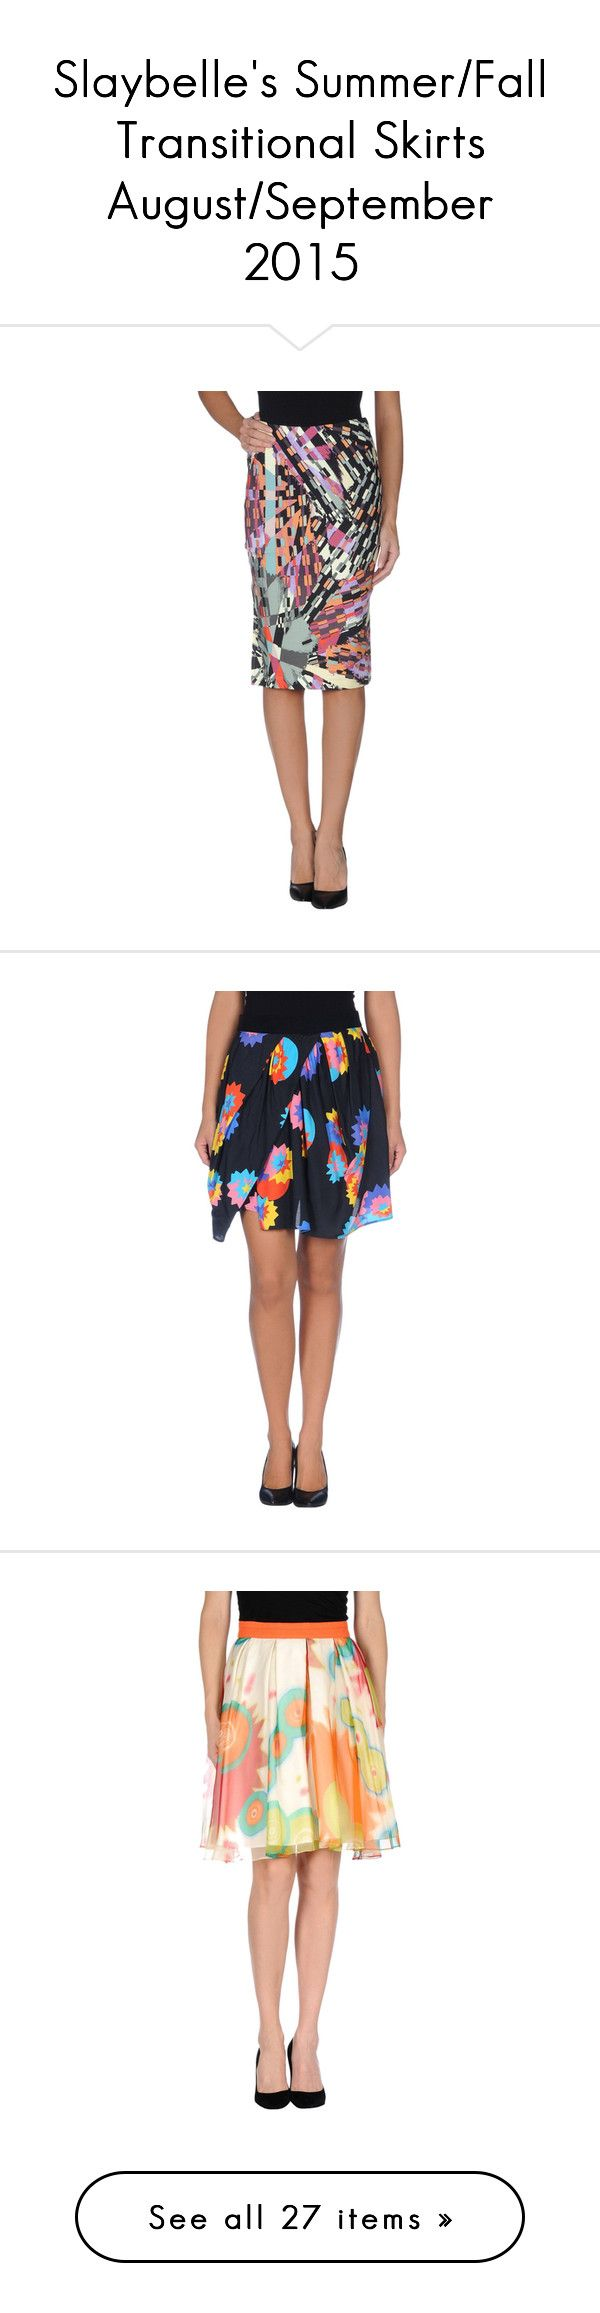 Slaybelle's Summer/Fall Transitional Skirts August/September 2015 by snsdreameress on Polyvore featuring polyvore, fashion, clothing, skirts, light yellow, tube skirt, pattern skirt, white tube skirt, print skirt, colorful skirts, black, knee high skirts, knee length a line skirt, pocket skirt, elastic waist skirt, rayon skirt, orange, a line skirt, orange pleated skirt, pattern a line skirt, knee length pleated skirt, green, cotton knee length skirt, multi color skirt, green knee length…